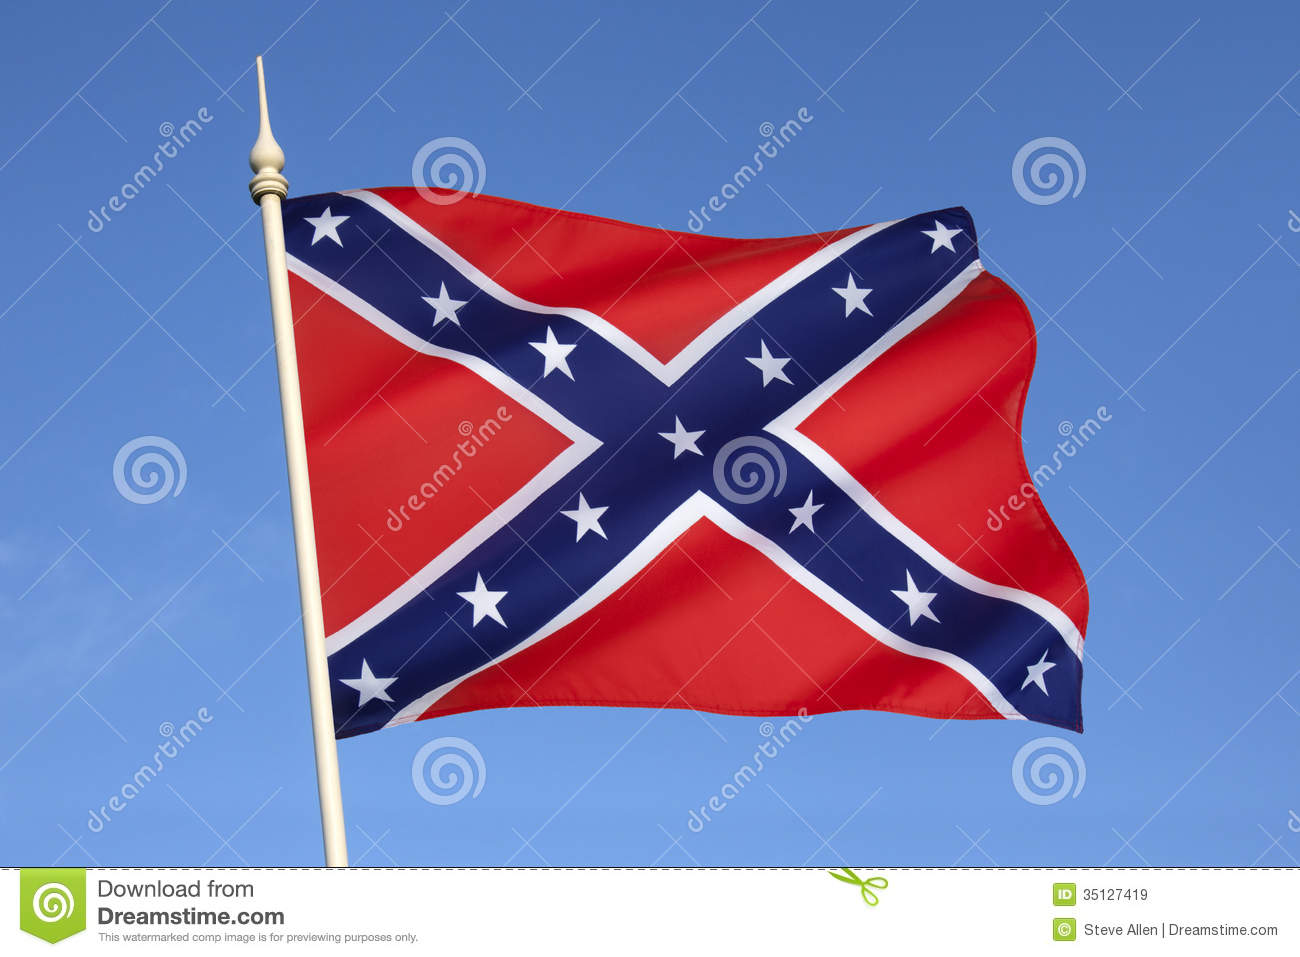 confederate states of america rebel flag 2nd national flag confederate states of america the 2nd national was adopted by the permanent congress in the flag act of 1863 it became known as the stainless banner or the jackson flag known as the stainless banner because of the pure white field with the square battle flag as the union.